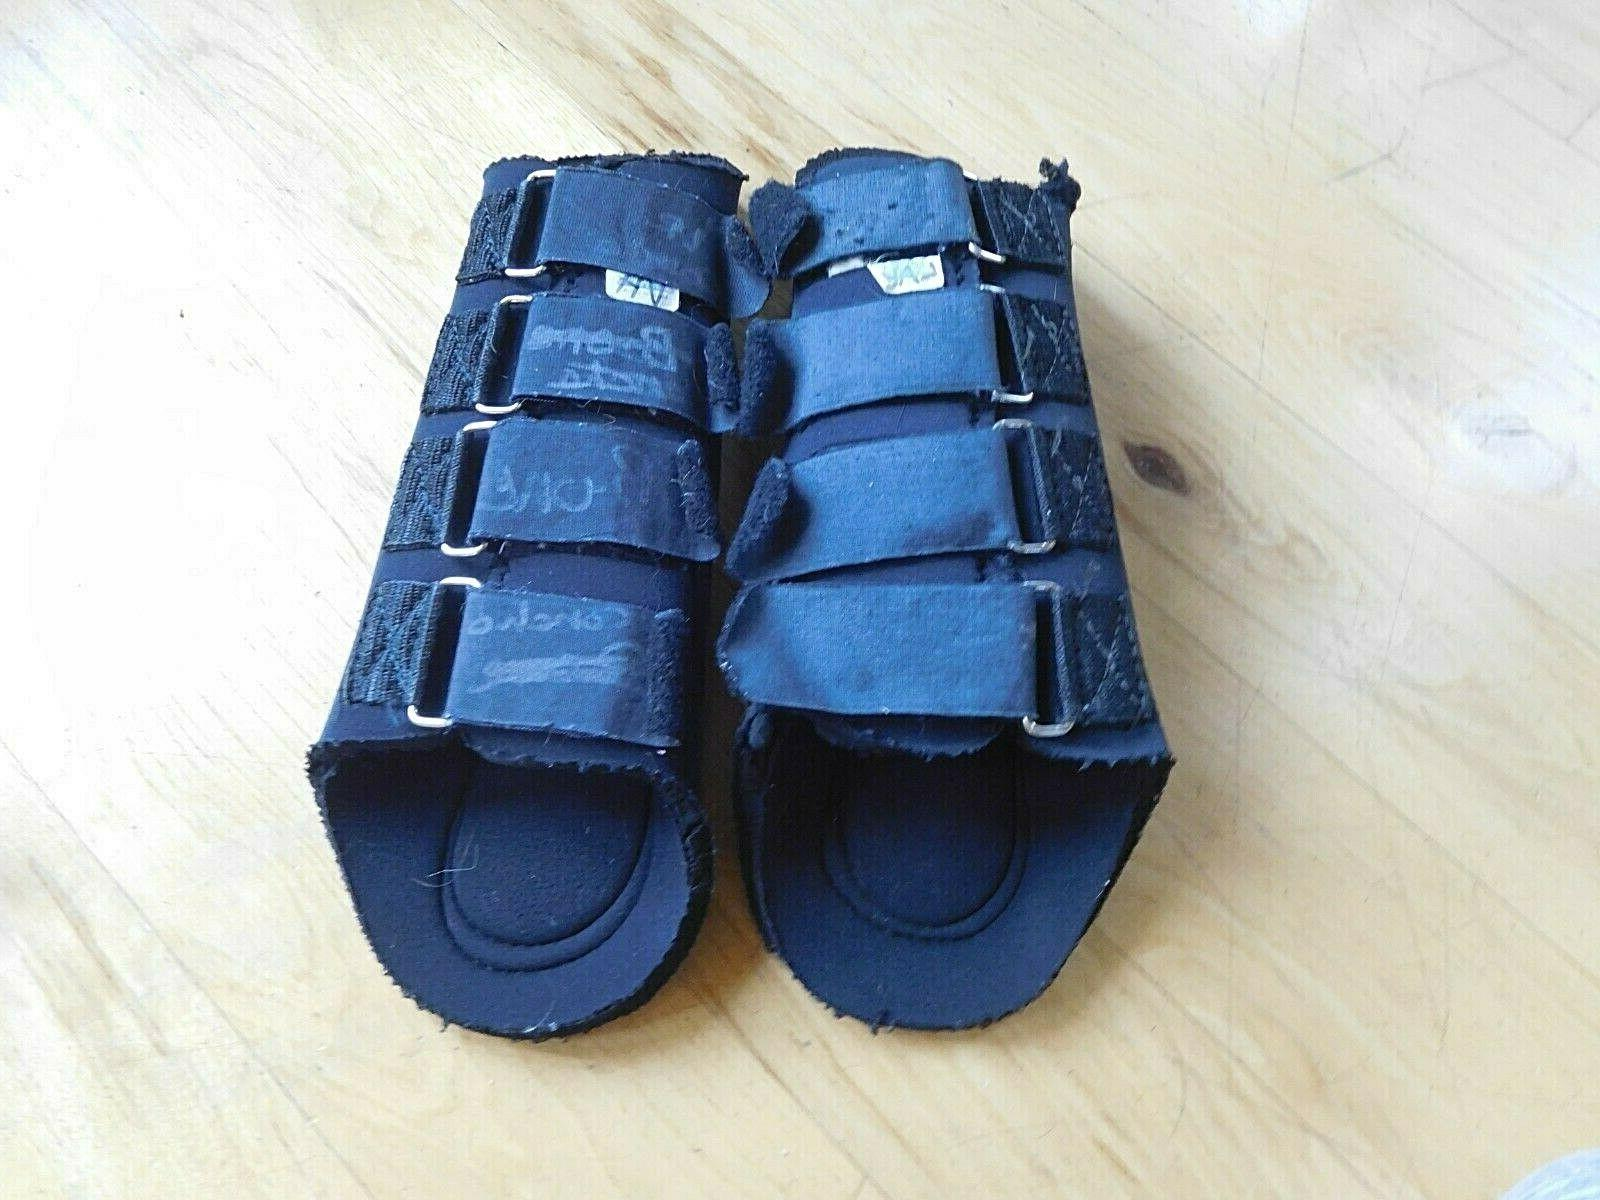 horse galloping neoprene splint boots large hind